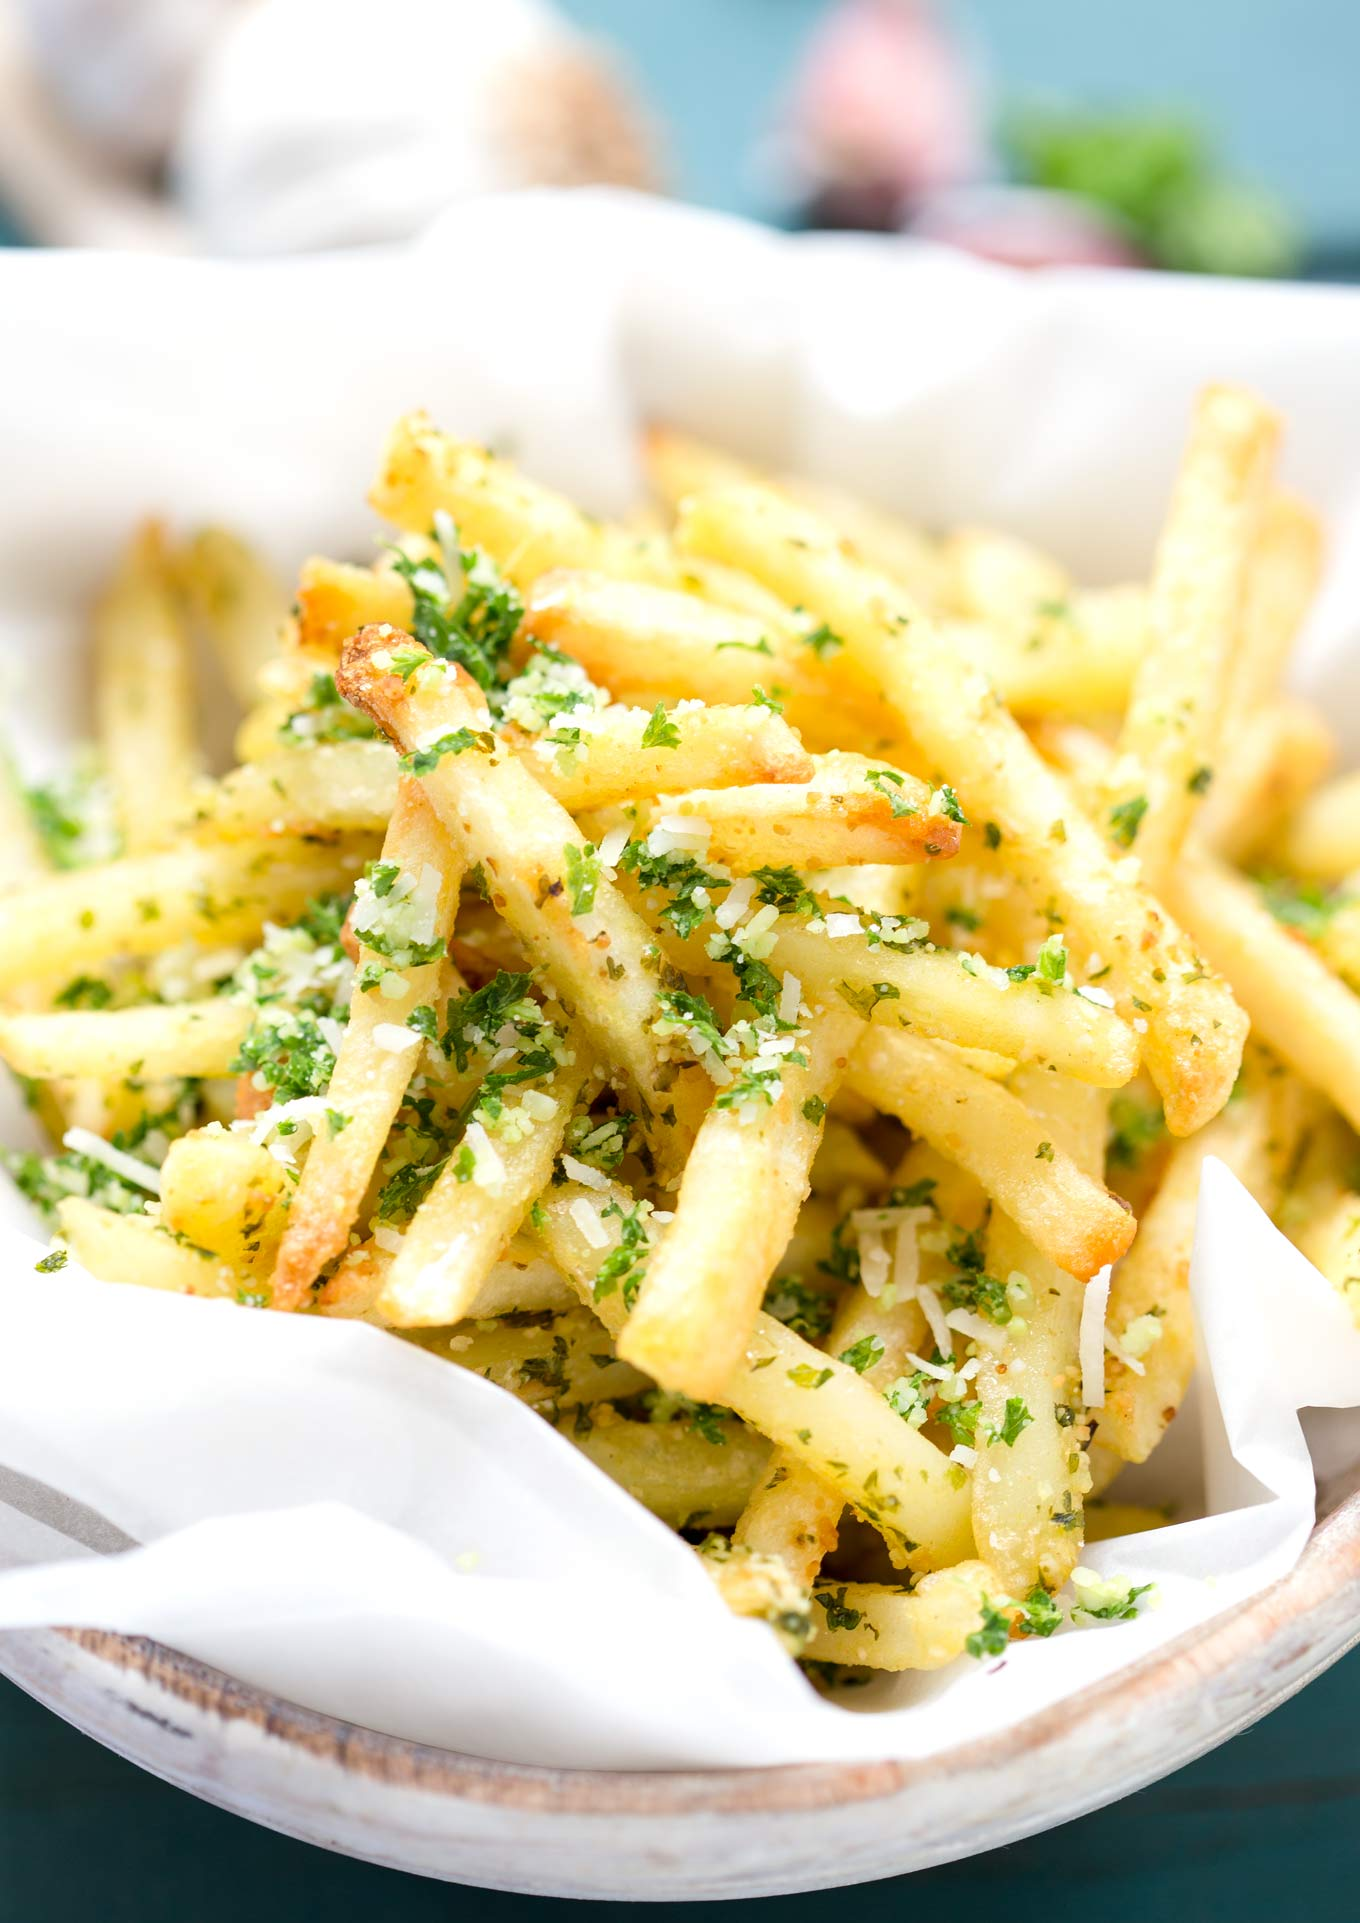 SKINNY GARLIC FRIES | GARLIC MATTERS